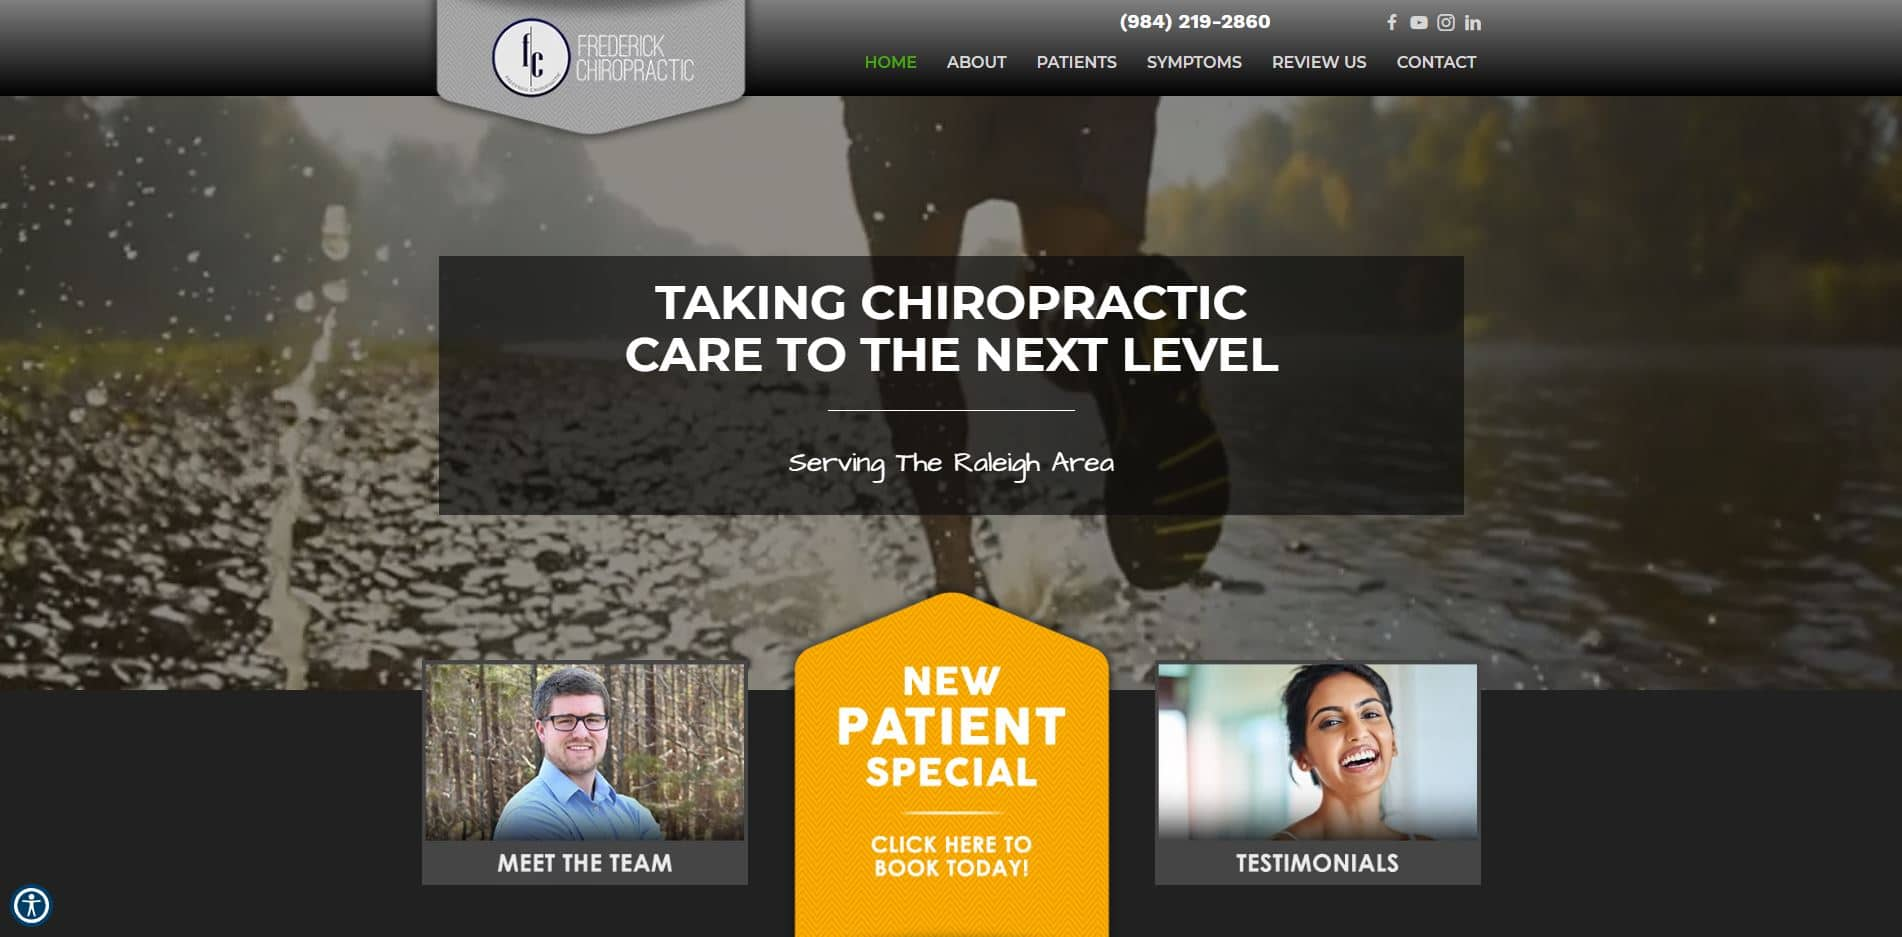 Chiropractor in Raleigh